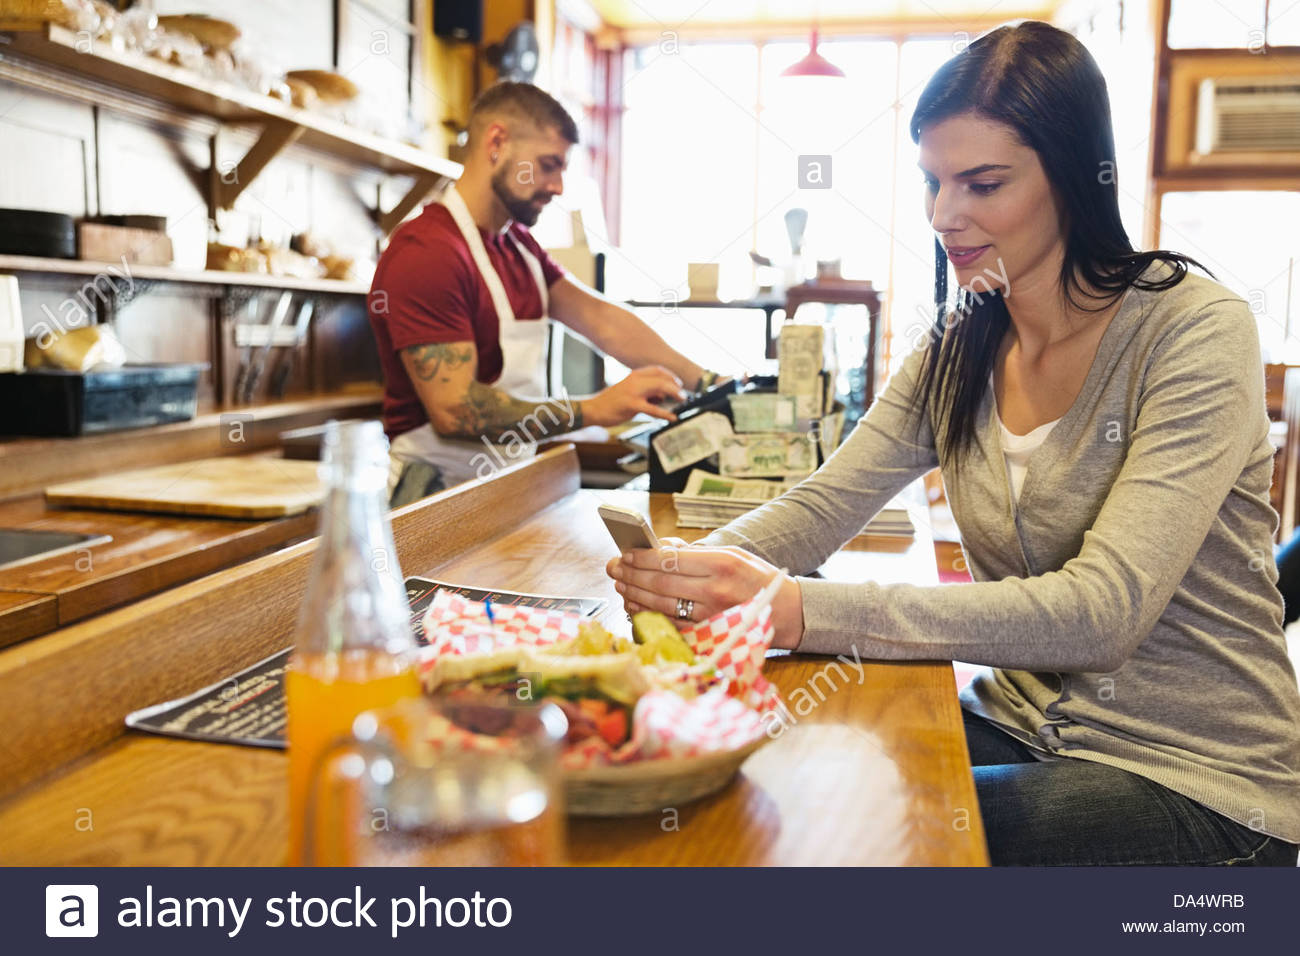 Young woman text messaging at deli counter - Stock Image